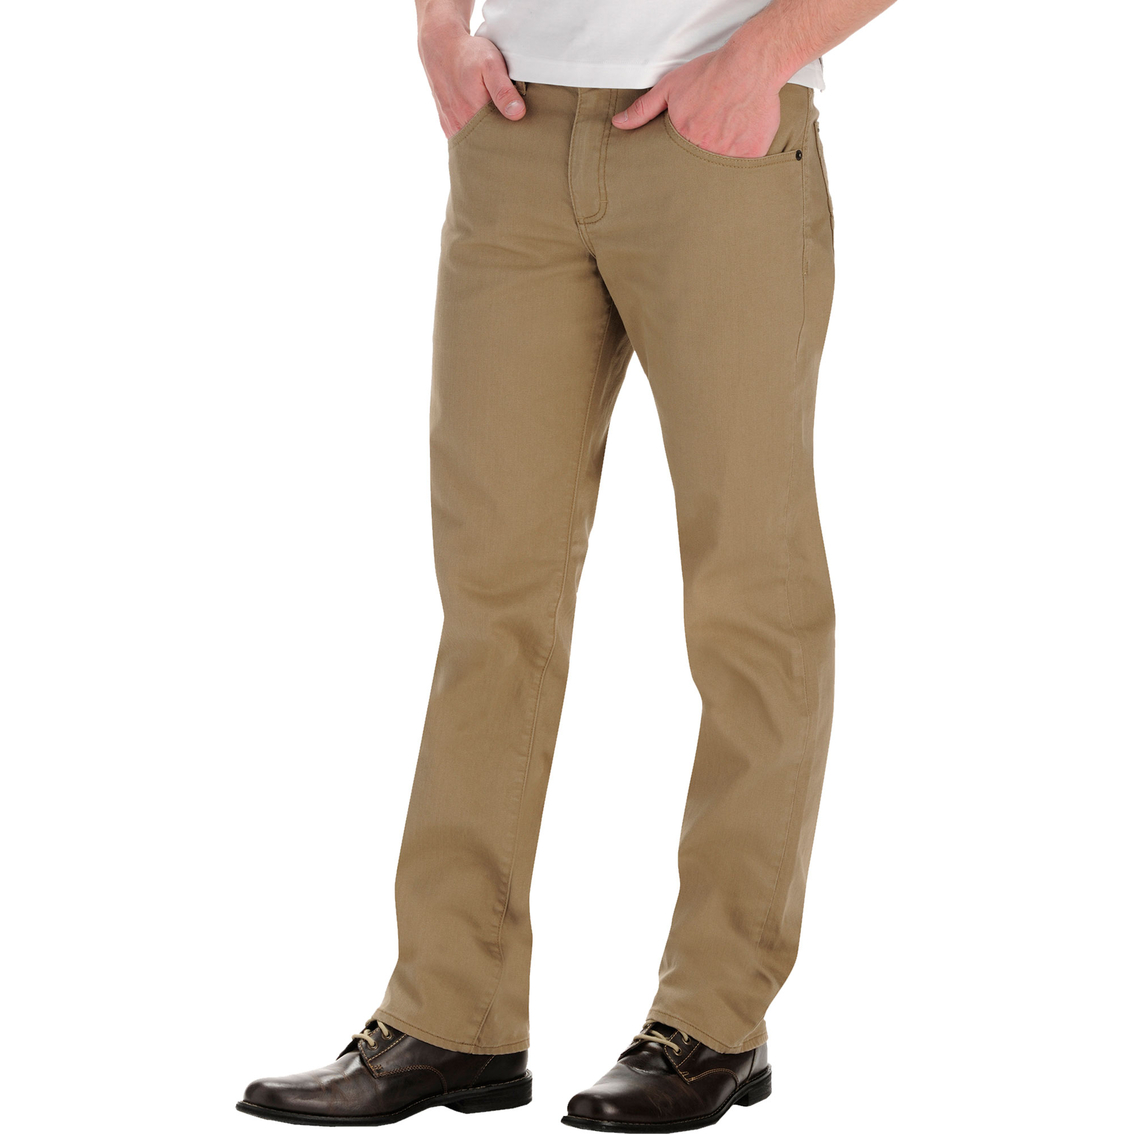 5450fc2d Lee Modern Series Straight Fit Jeans | Young Men's Apparel | Shop ...